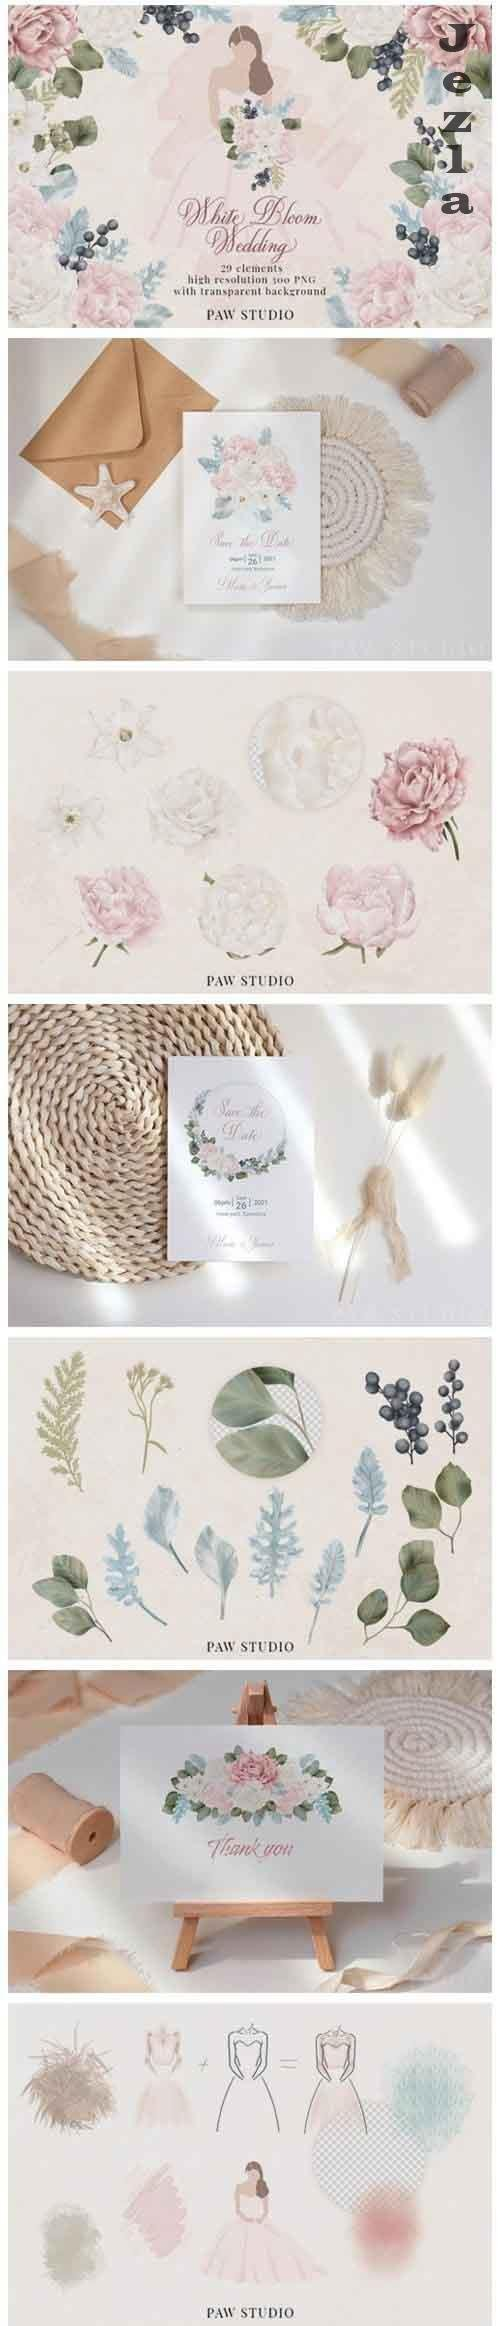 White Pink Flowers Winter Leaves Wedding - 957122